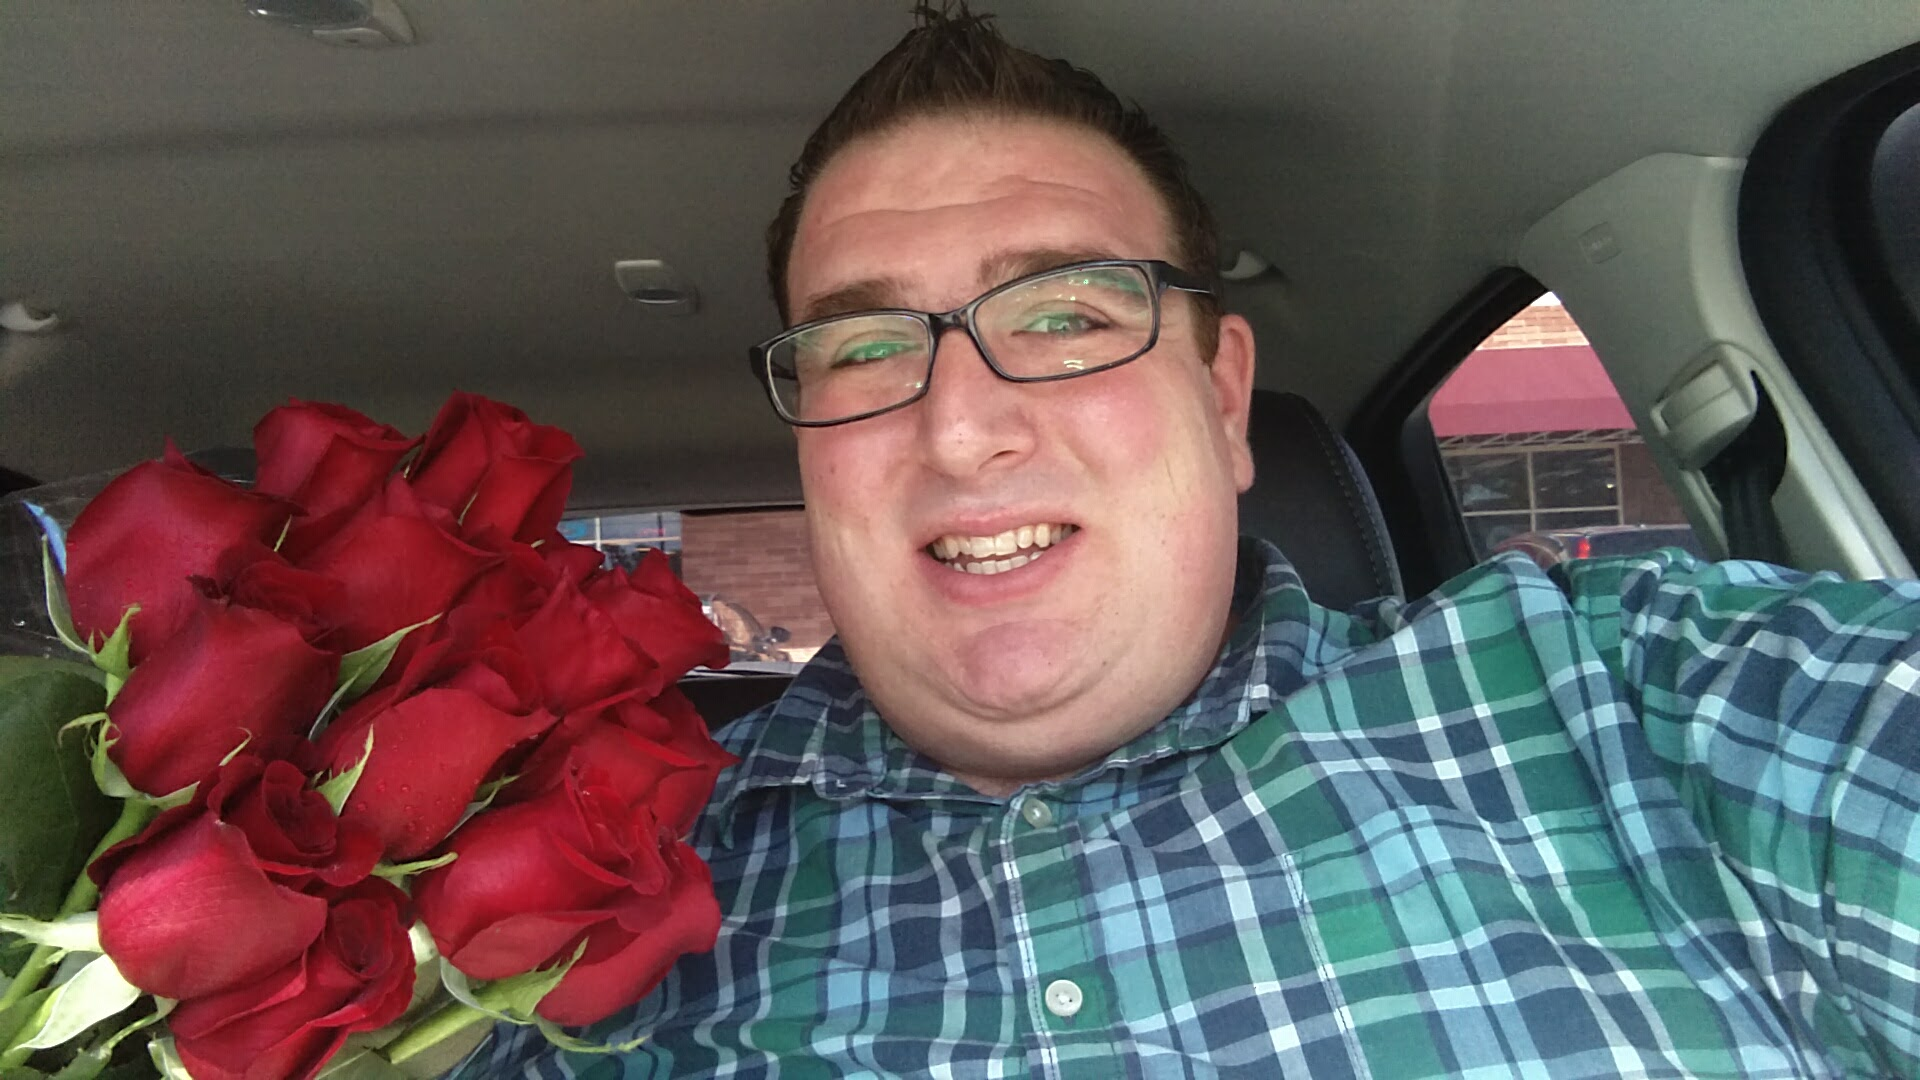 Getting roses from the local florist.